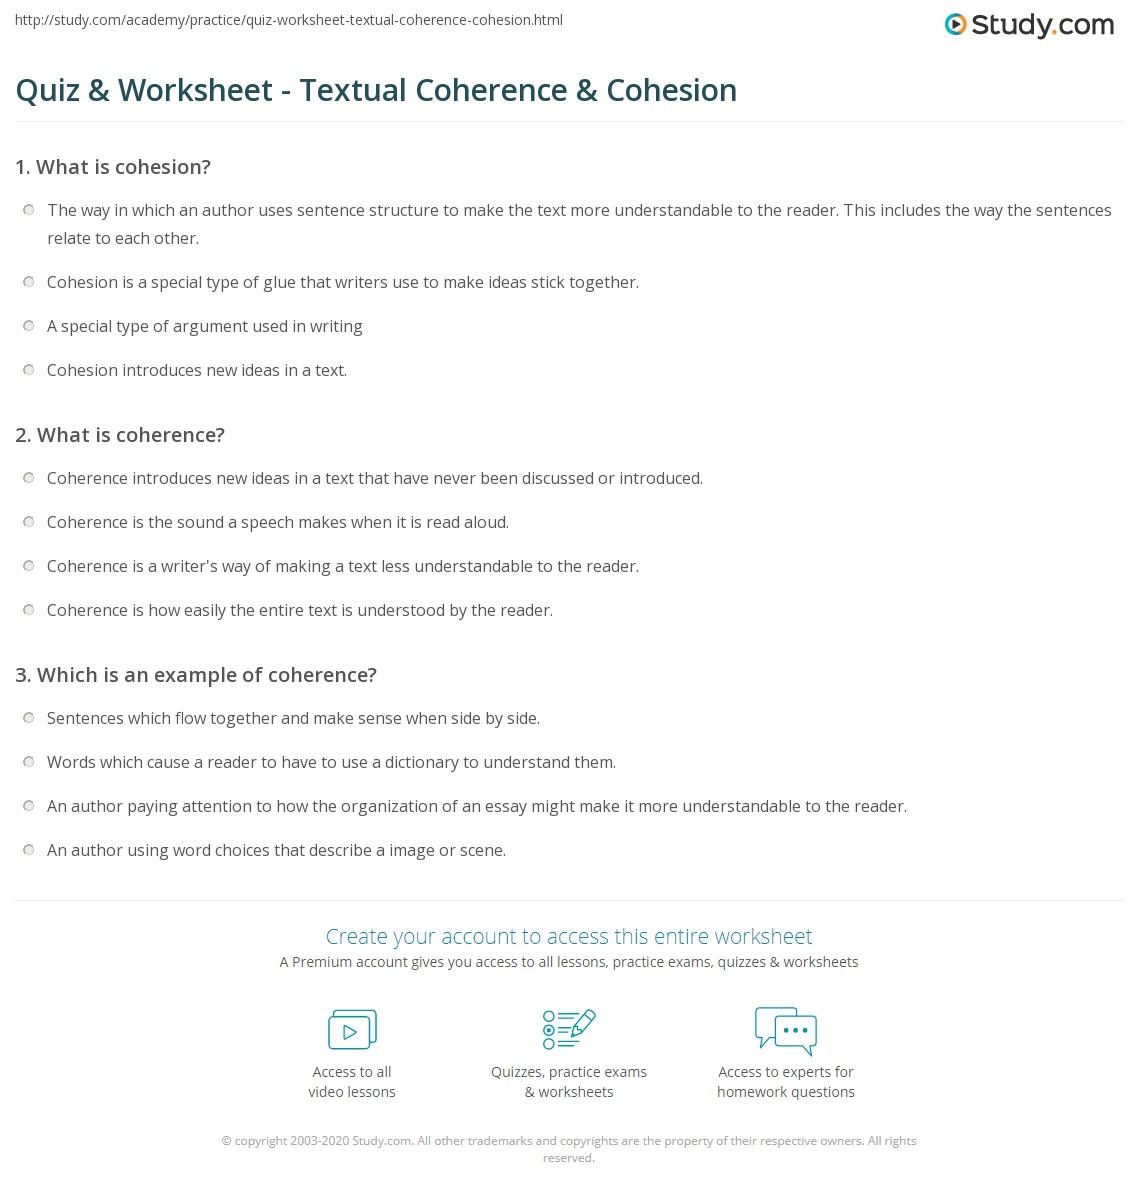 Quiz & Worksheet - Textual Coherence & Cohesion | Study com